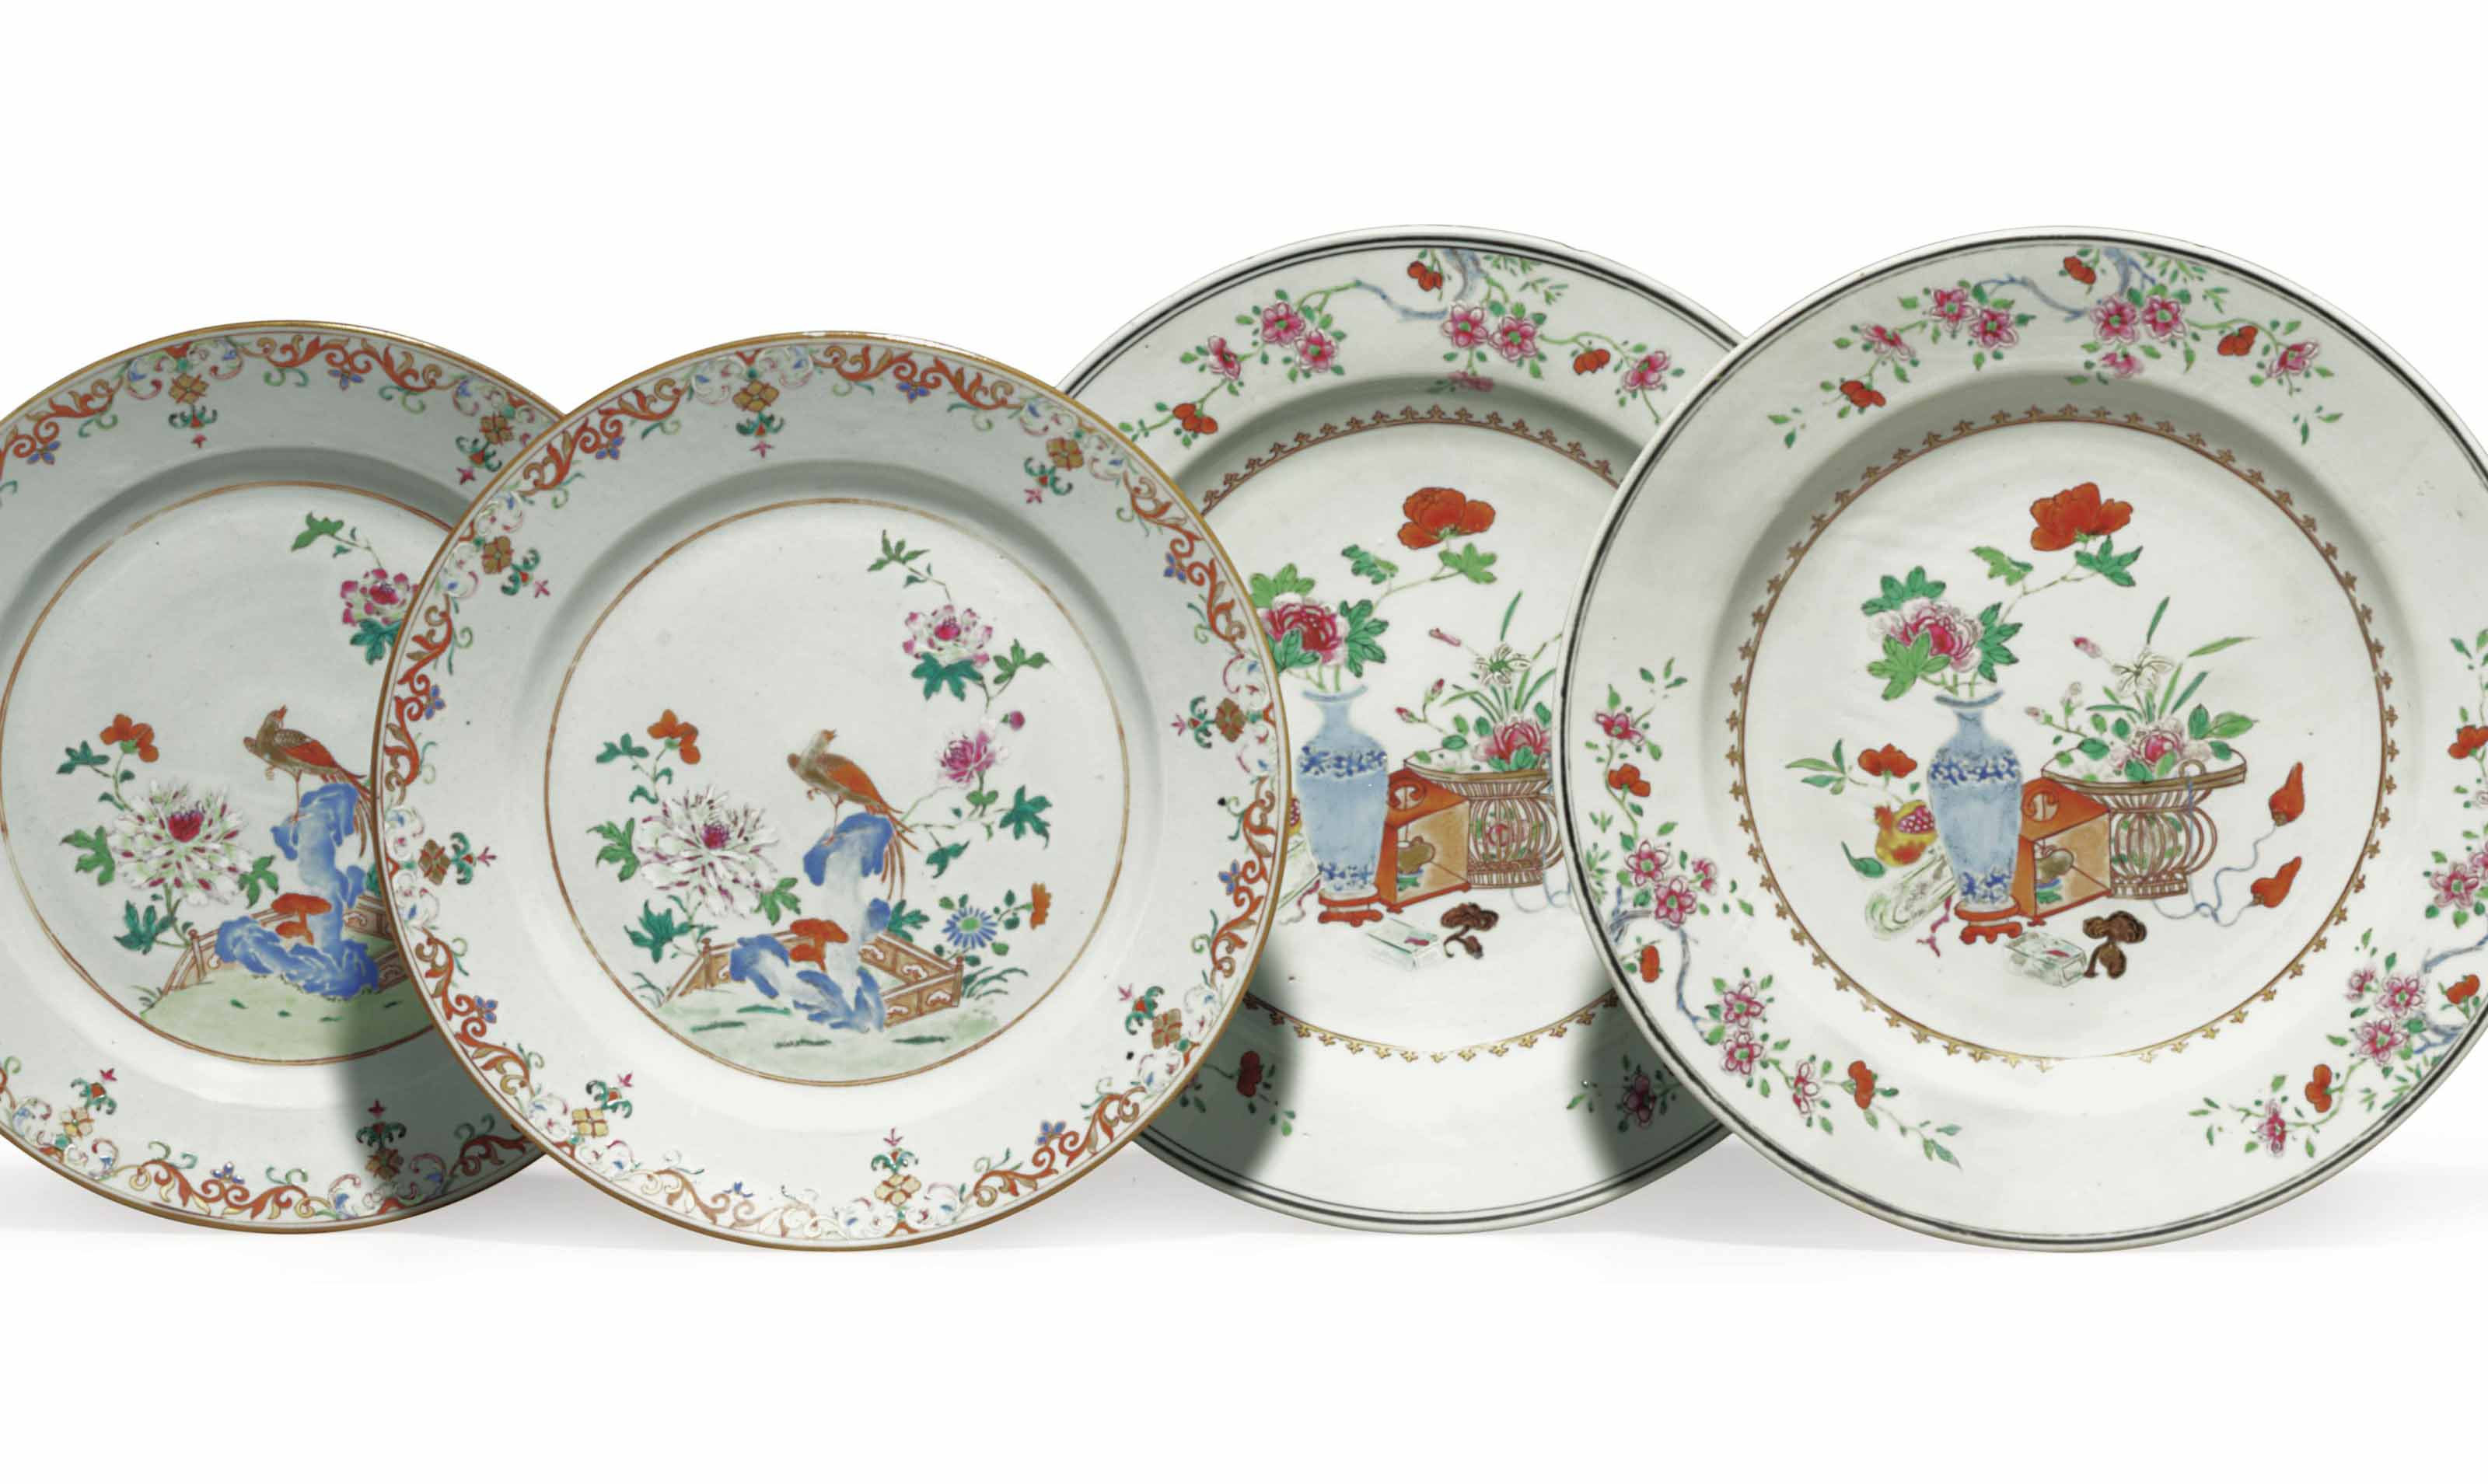 TWO PAIRS OF CHINESE EXPORT PORCELAIN FAMILLE ROSE DISHES